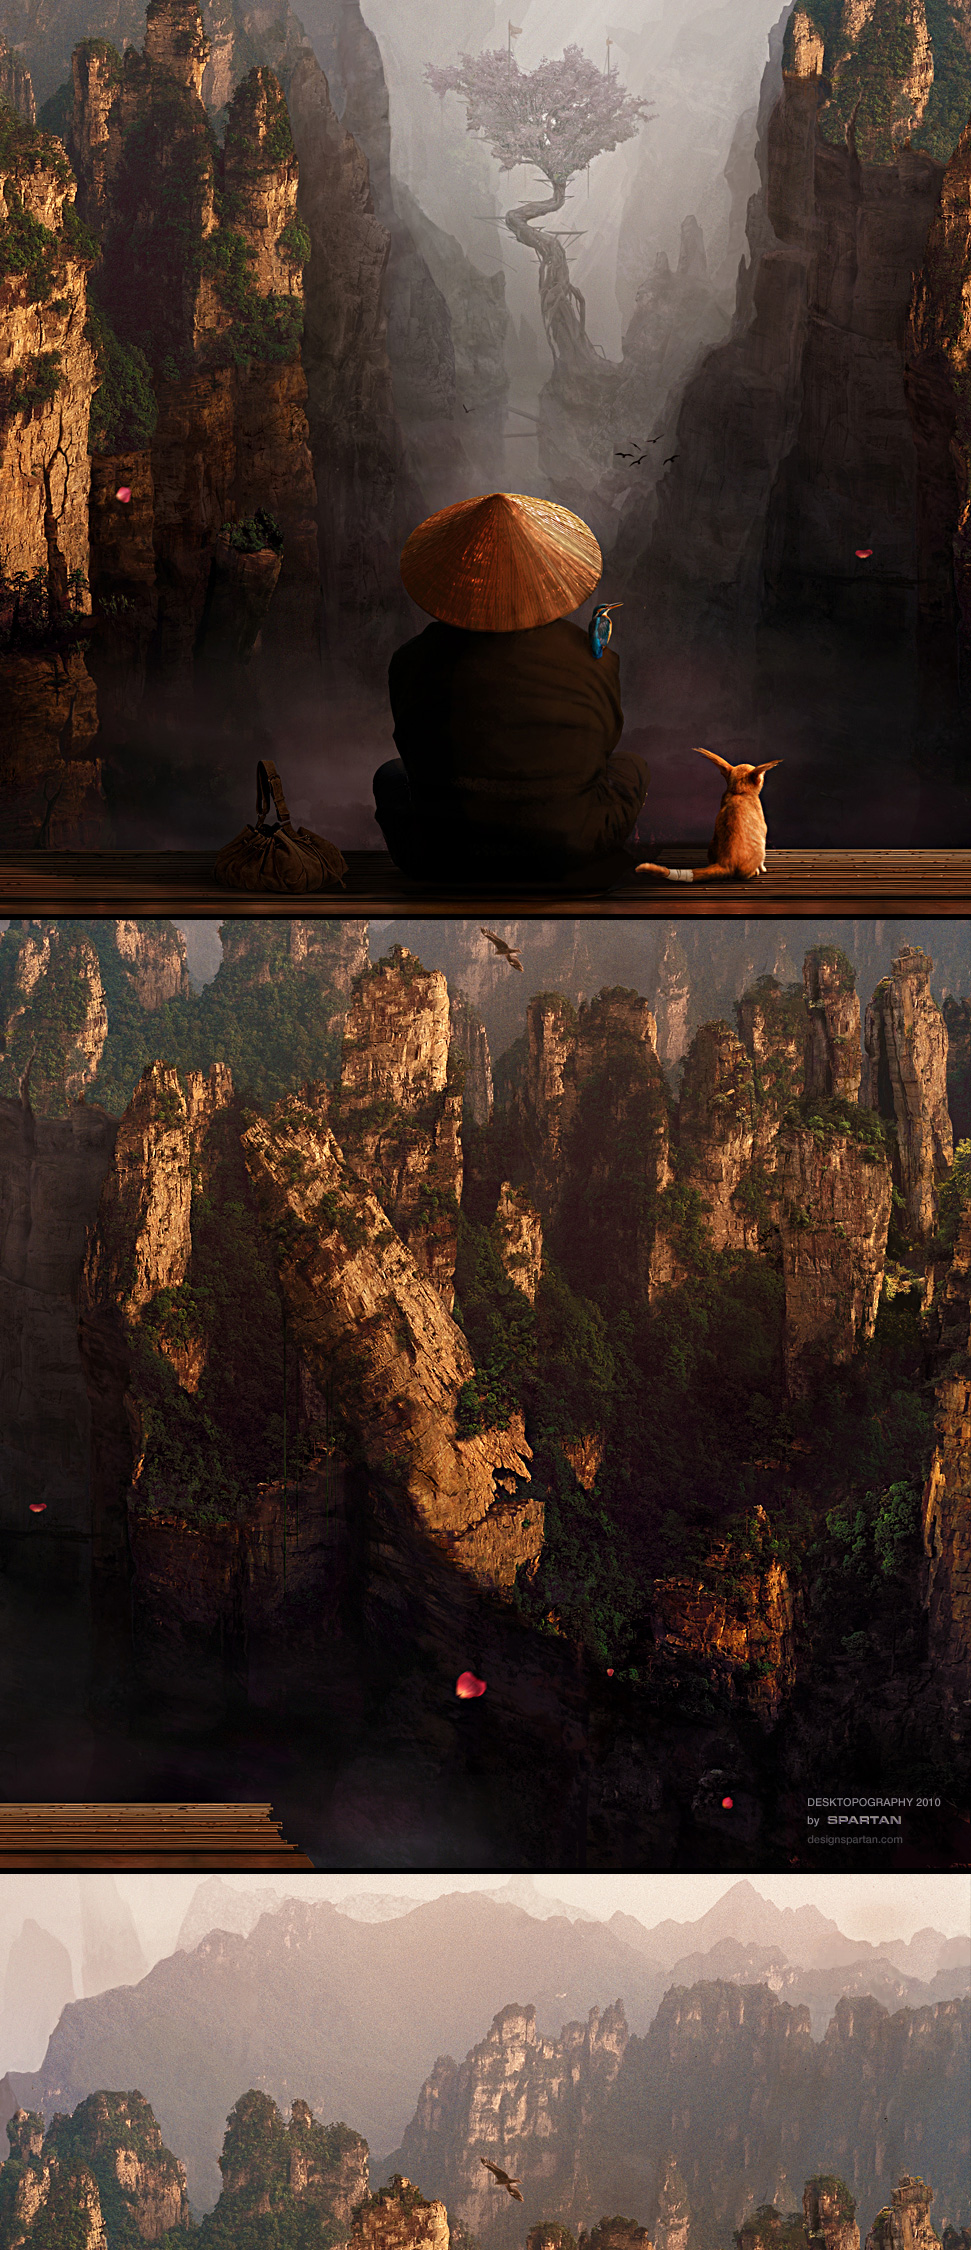 Desktopography matte painting close ups